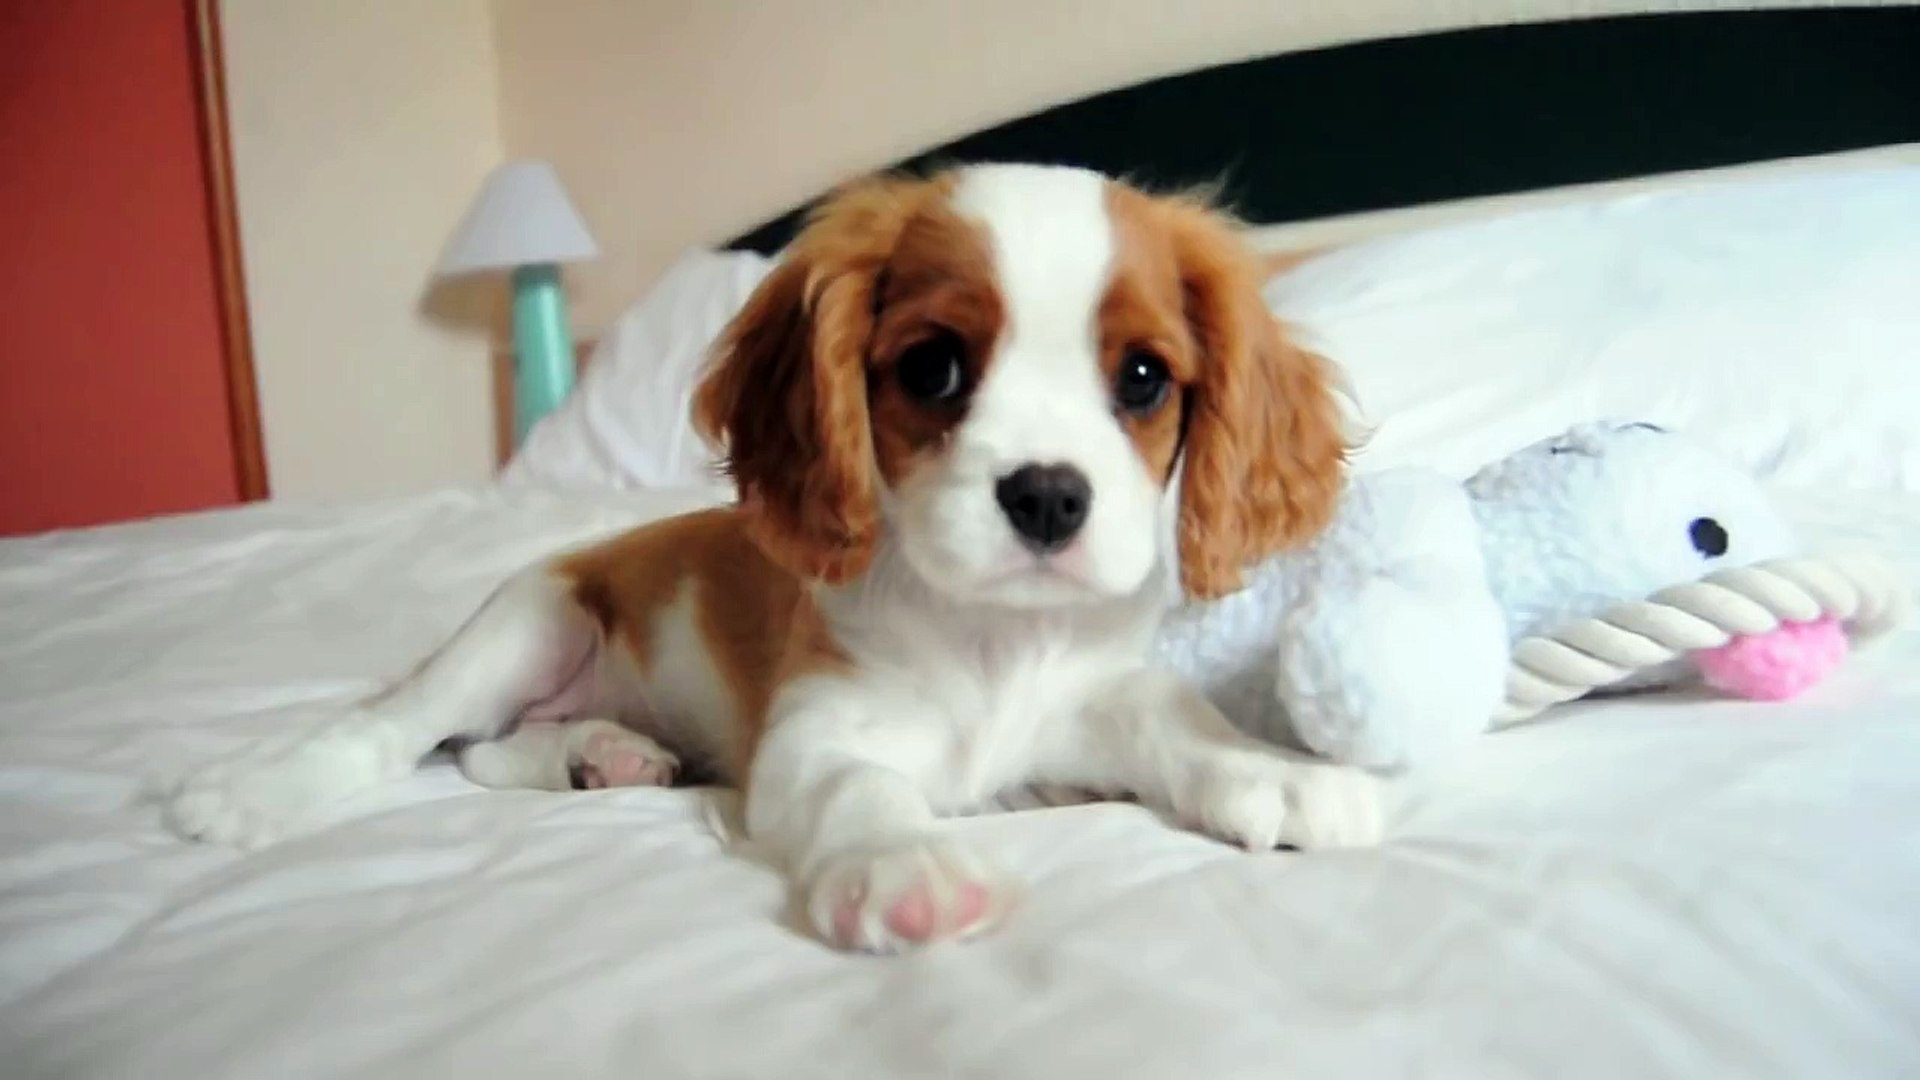 Brandy The Cutest Cavalier King Charles Spaniel Puppy Ever Dog Baby At The Bed Video Dailymotion